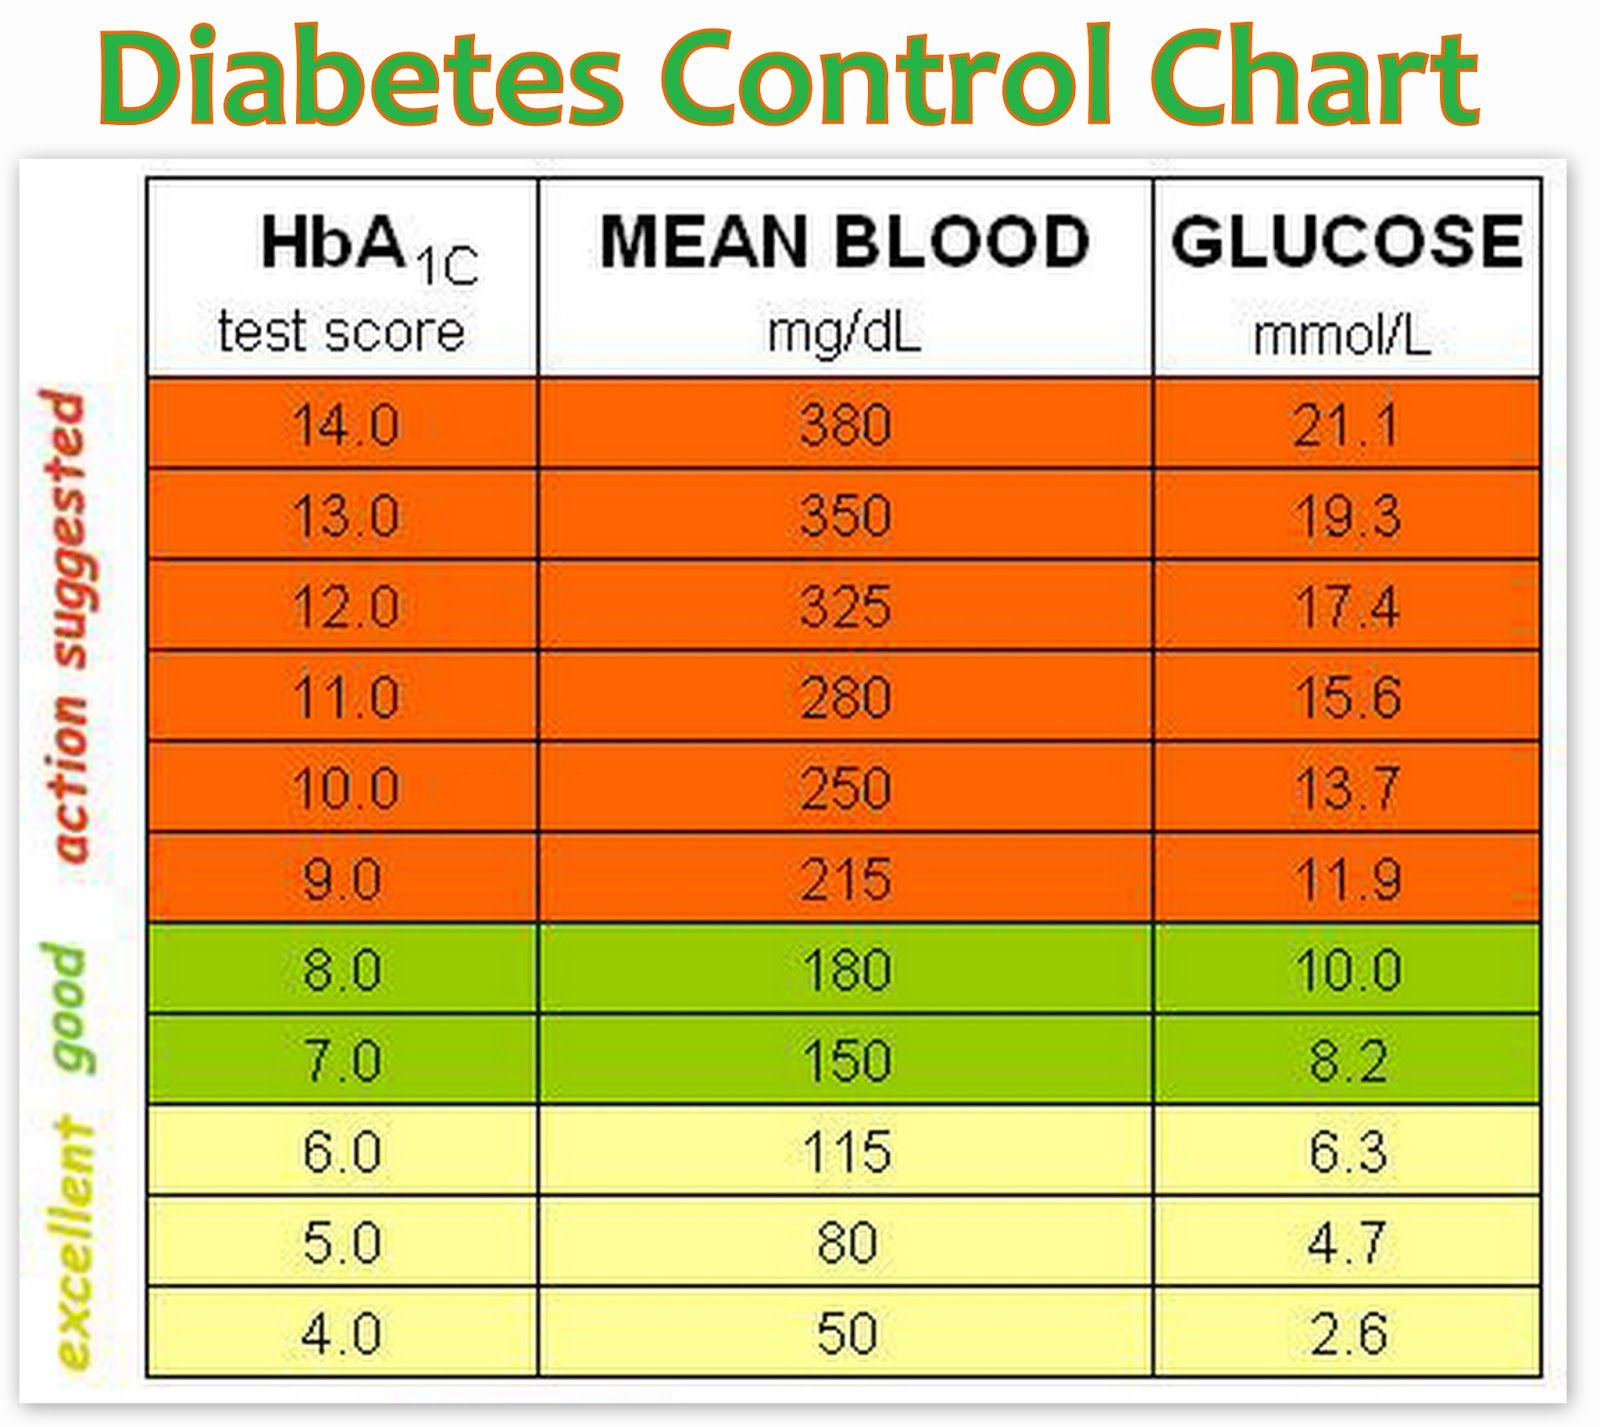 Learn As Much As You Can On The Subject Of Diabetes